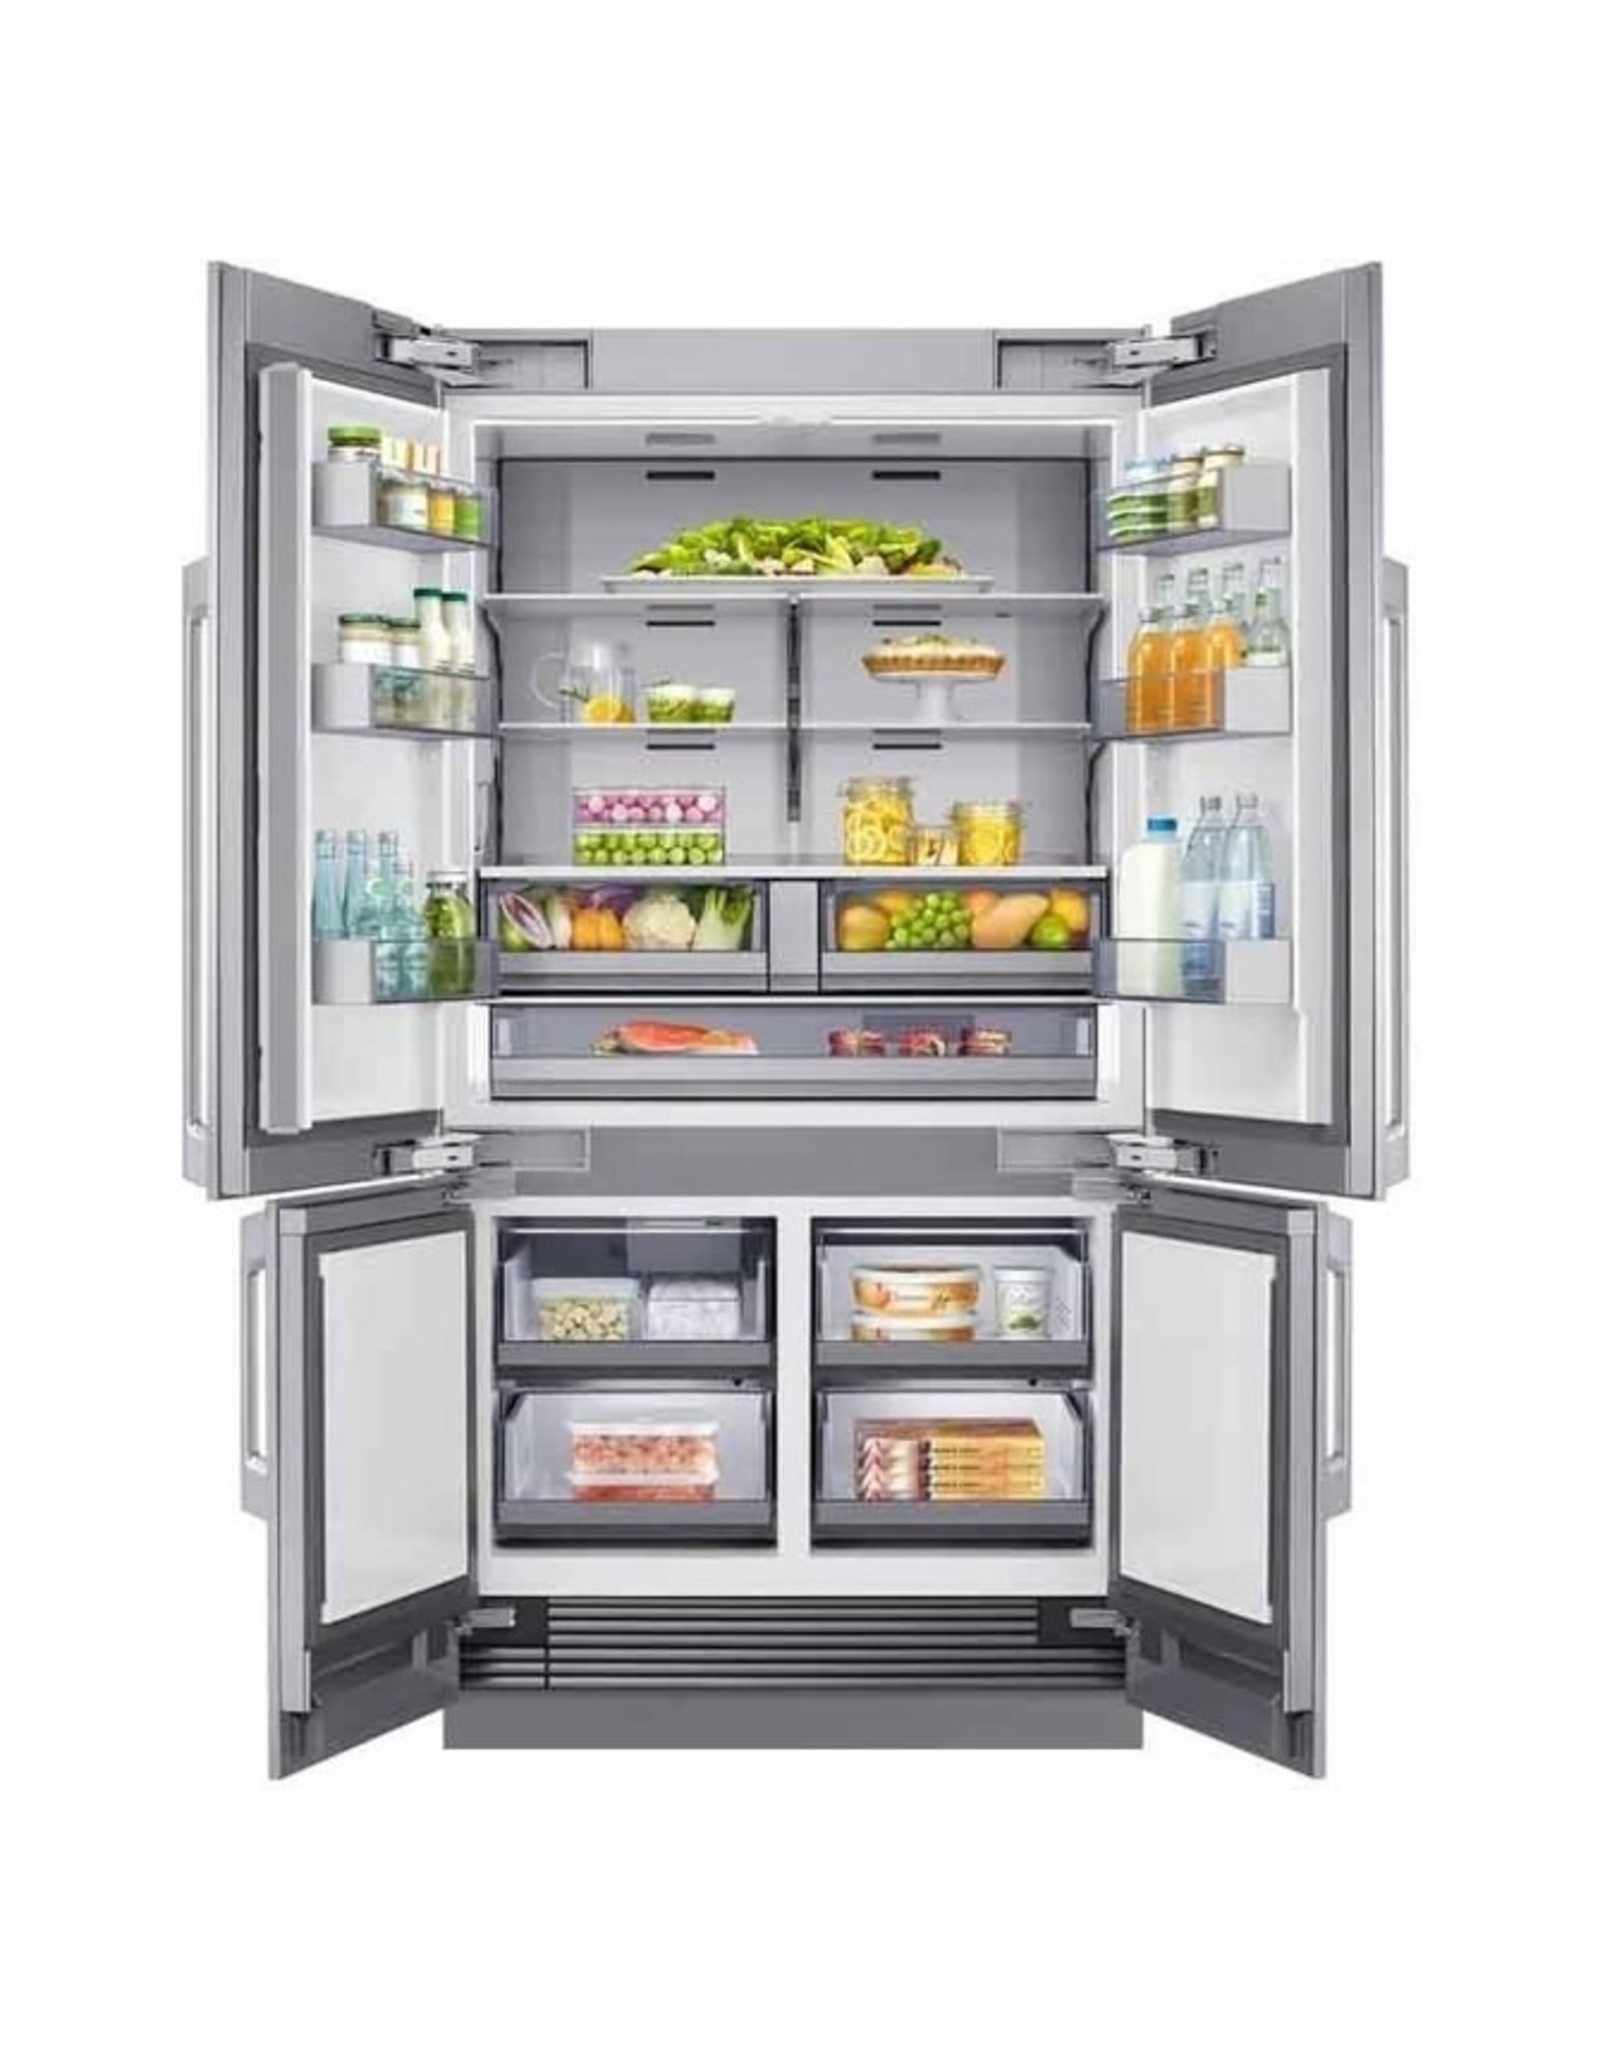 Dacor Transitional DRF425300AP 42 Inch Panel Ready Built-In 4 Door French Door Refrigerator with 23.5 Cu. Ft. Total Capacity, Internal Water Dispenser, Ice Maker, Triple Cooling, FreshZone™ Plus Compartment, FreshZone™ Drawer, Sabbath Mode, and ENERGY STAR® Qualified